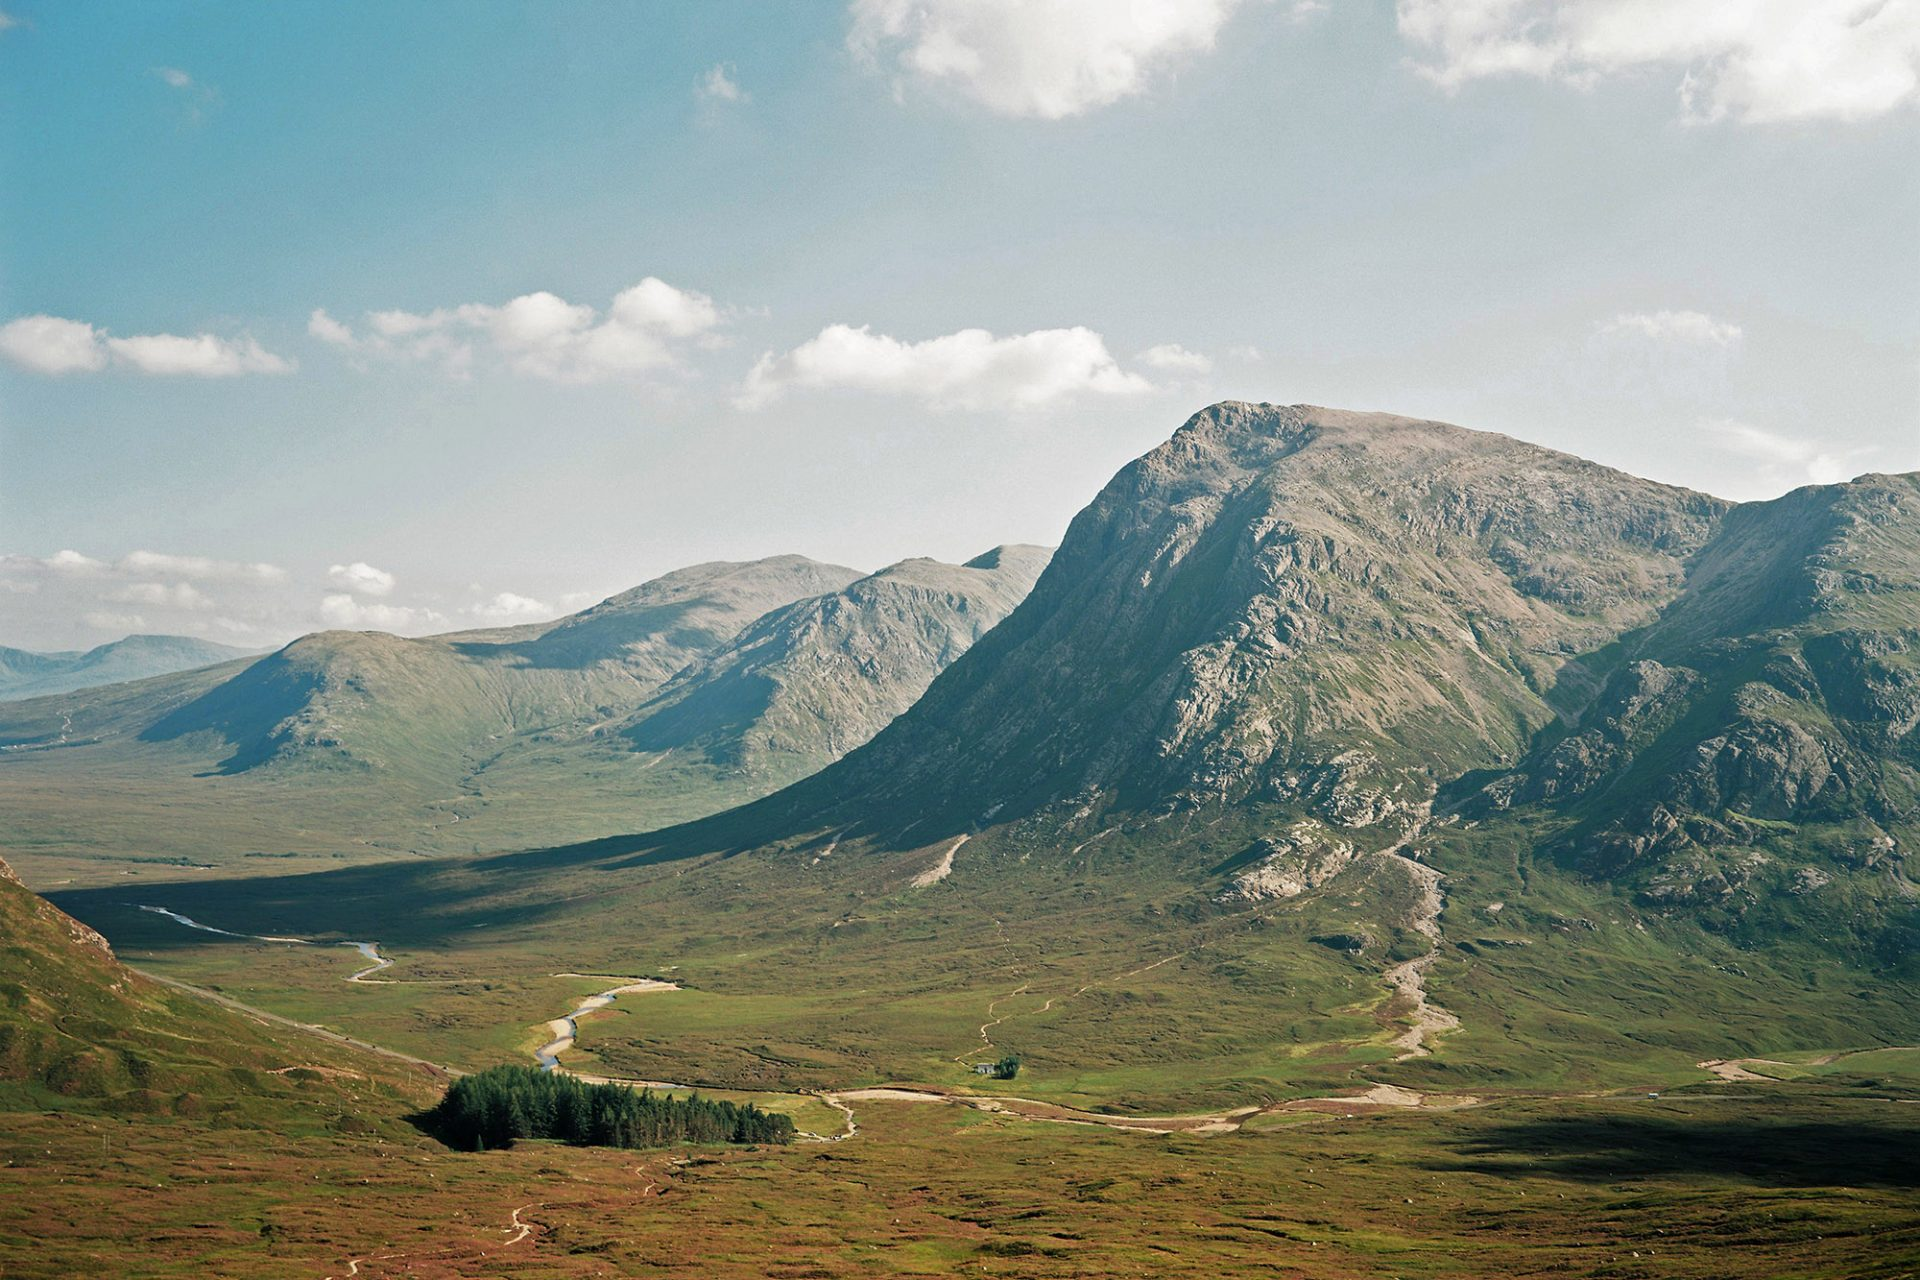 A view of Glencoe nature walk which is part of our tour of Scotland - The Adventurer